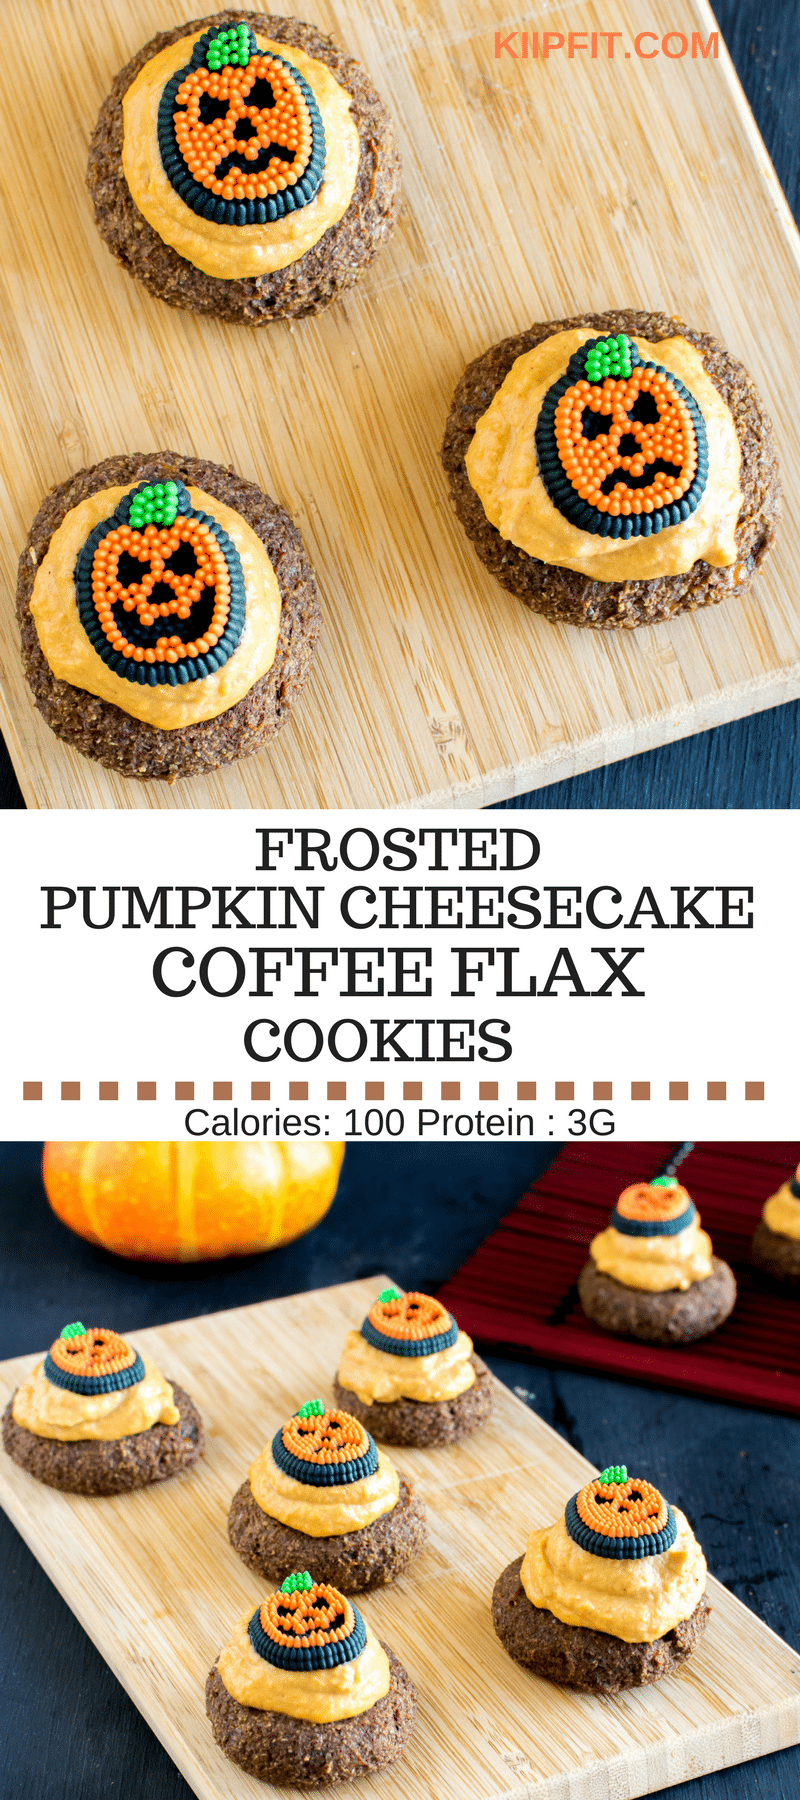 Frosted Pumpkin Cheesecake Coffee Flax Cookies is not only a lip smacking Halloween treat but is the cutest ever. These vegan cookies are soft and chewy with a variety of flavors infused in just one bite. The creamy pumpkin cheesecake frosting is outstanding and to die for [ vegan + gluten free ] kiipfit.com